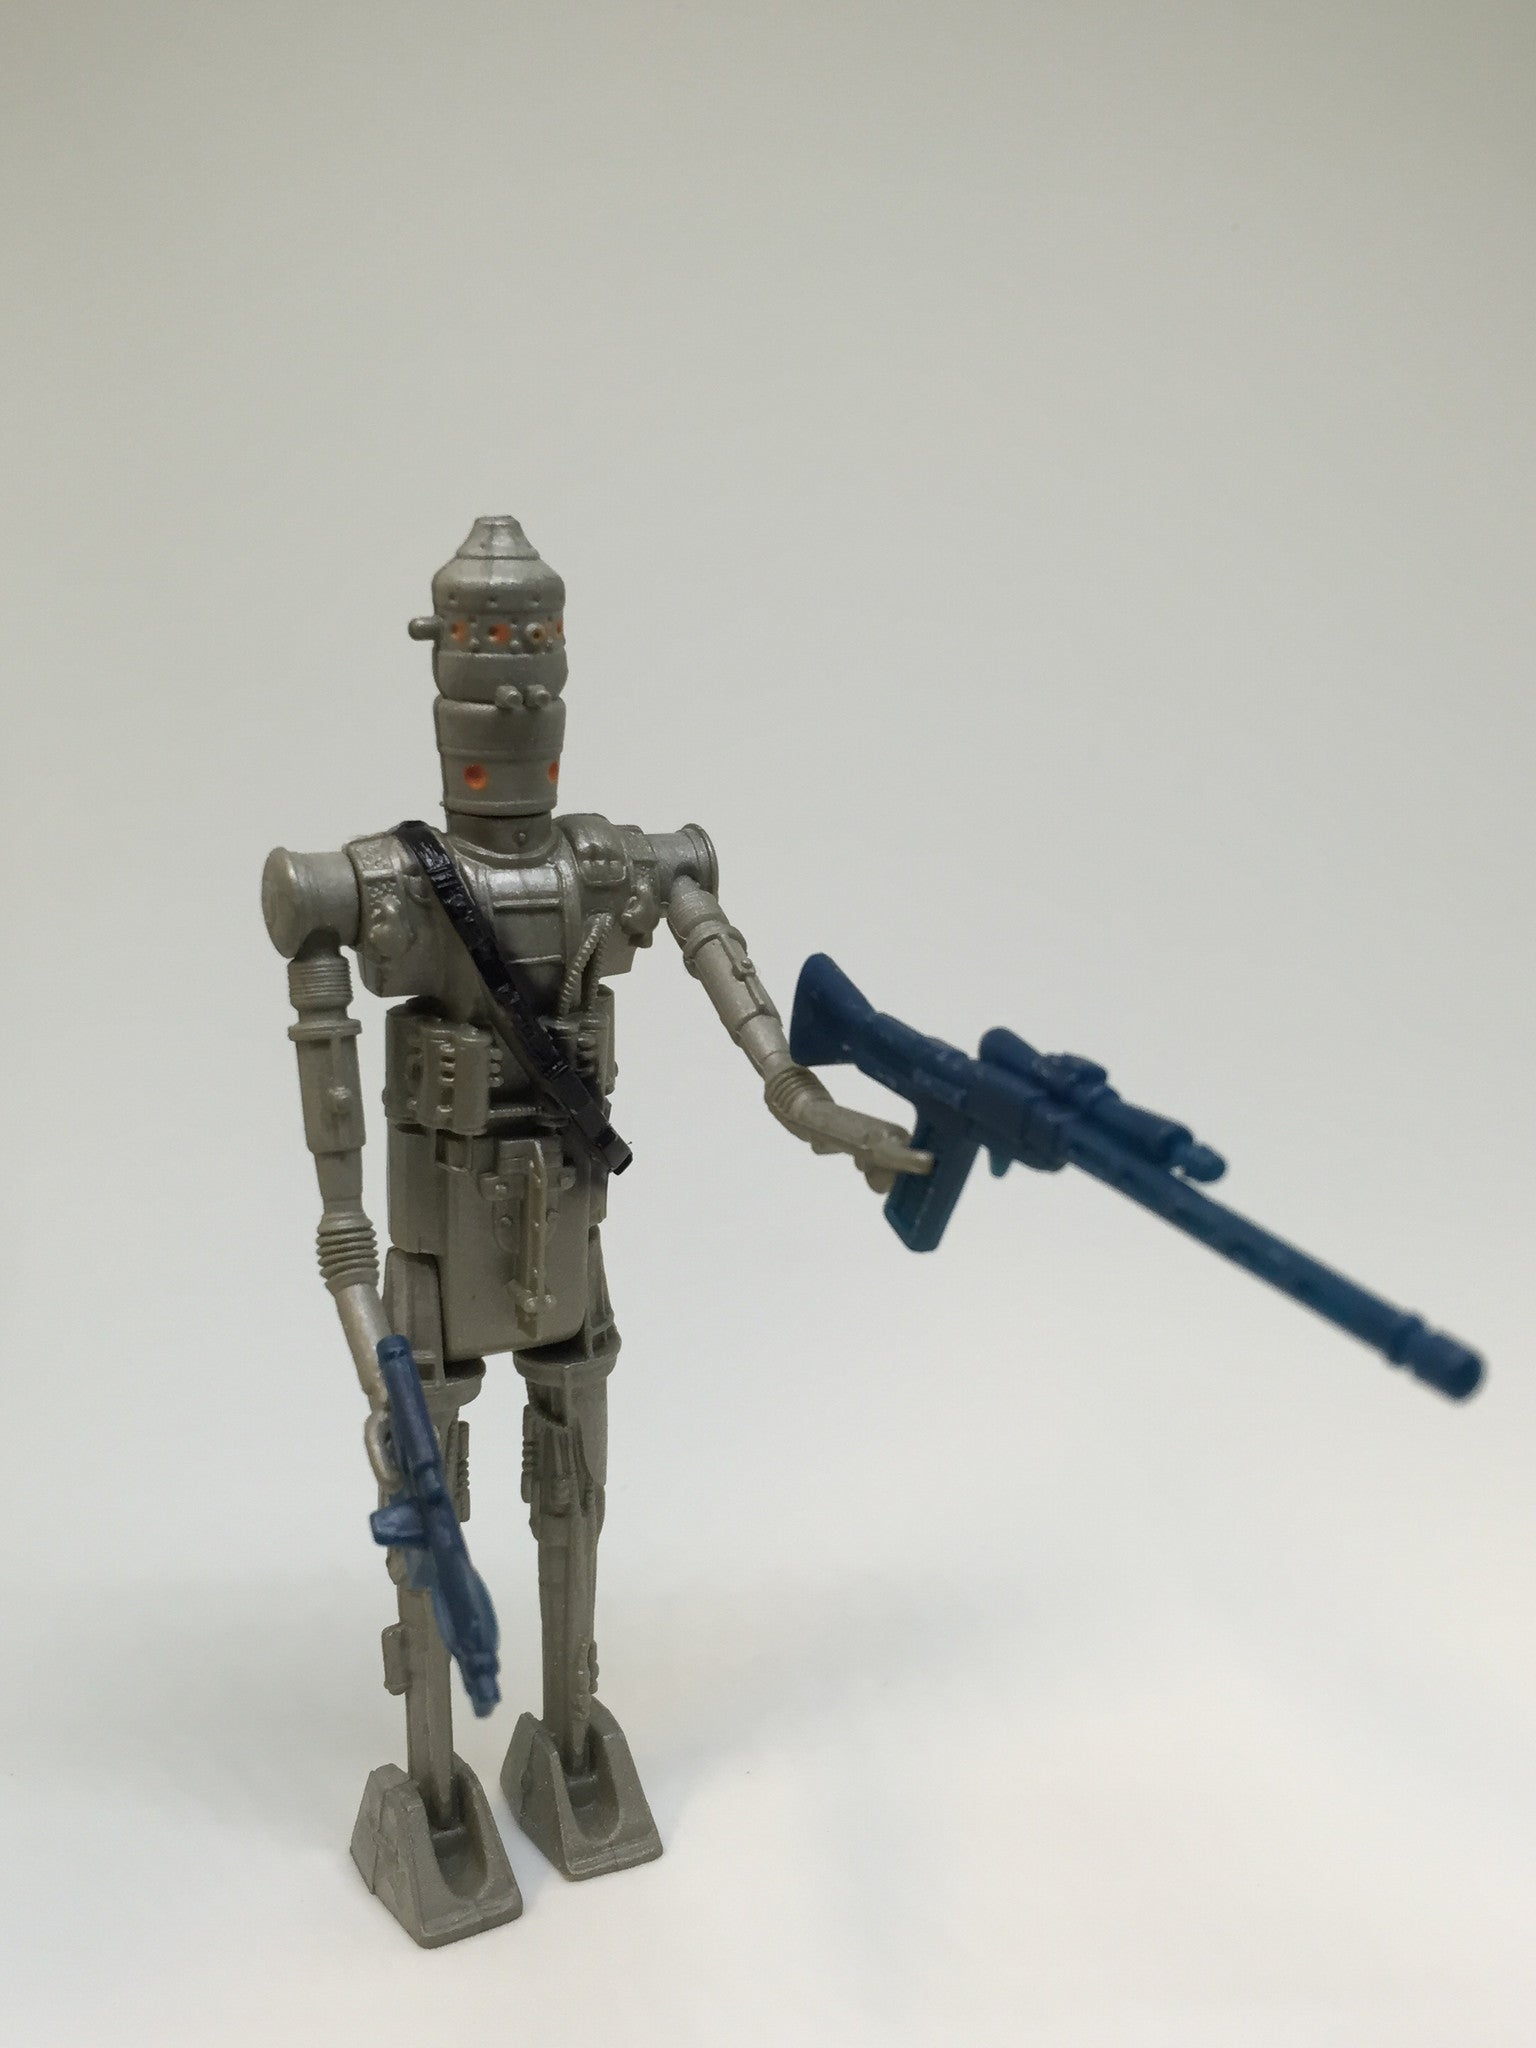 Vintage Star Wars Loose IG-88 Kenner Action Figure